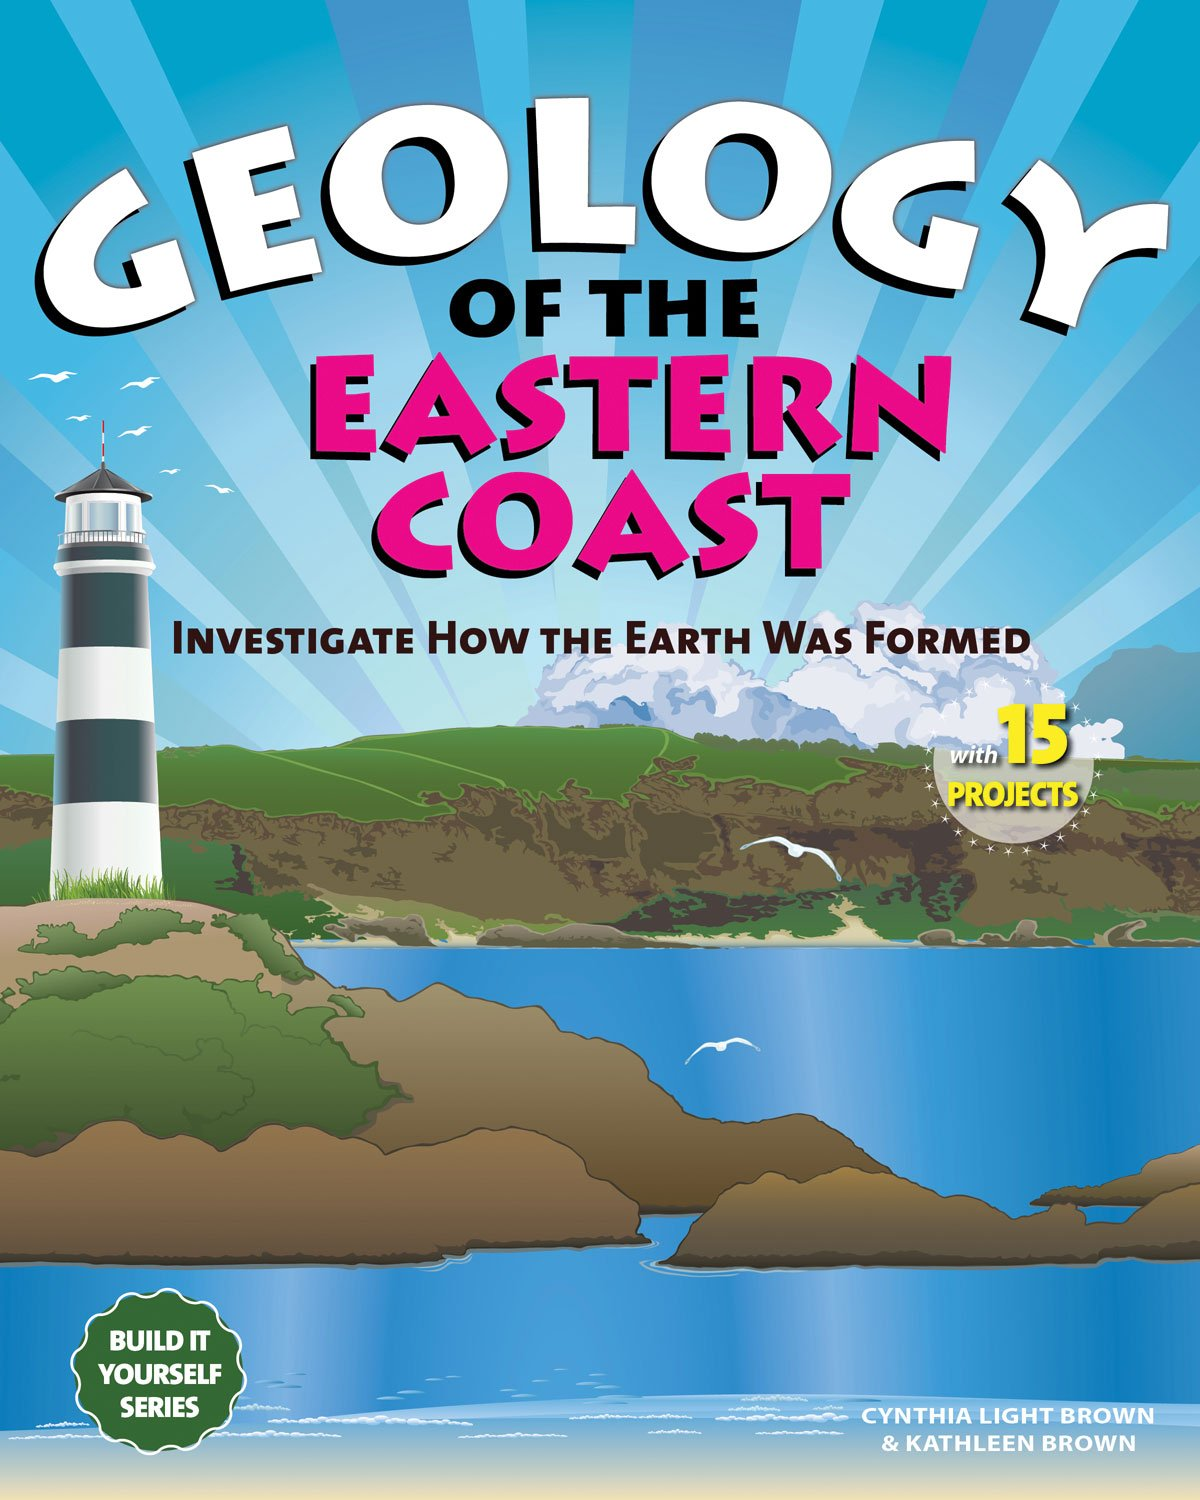 Geology of the Eastern Coast: Investigate How the Earth Was Formed With 15 Projects (Build It Yourself series)